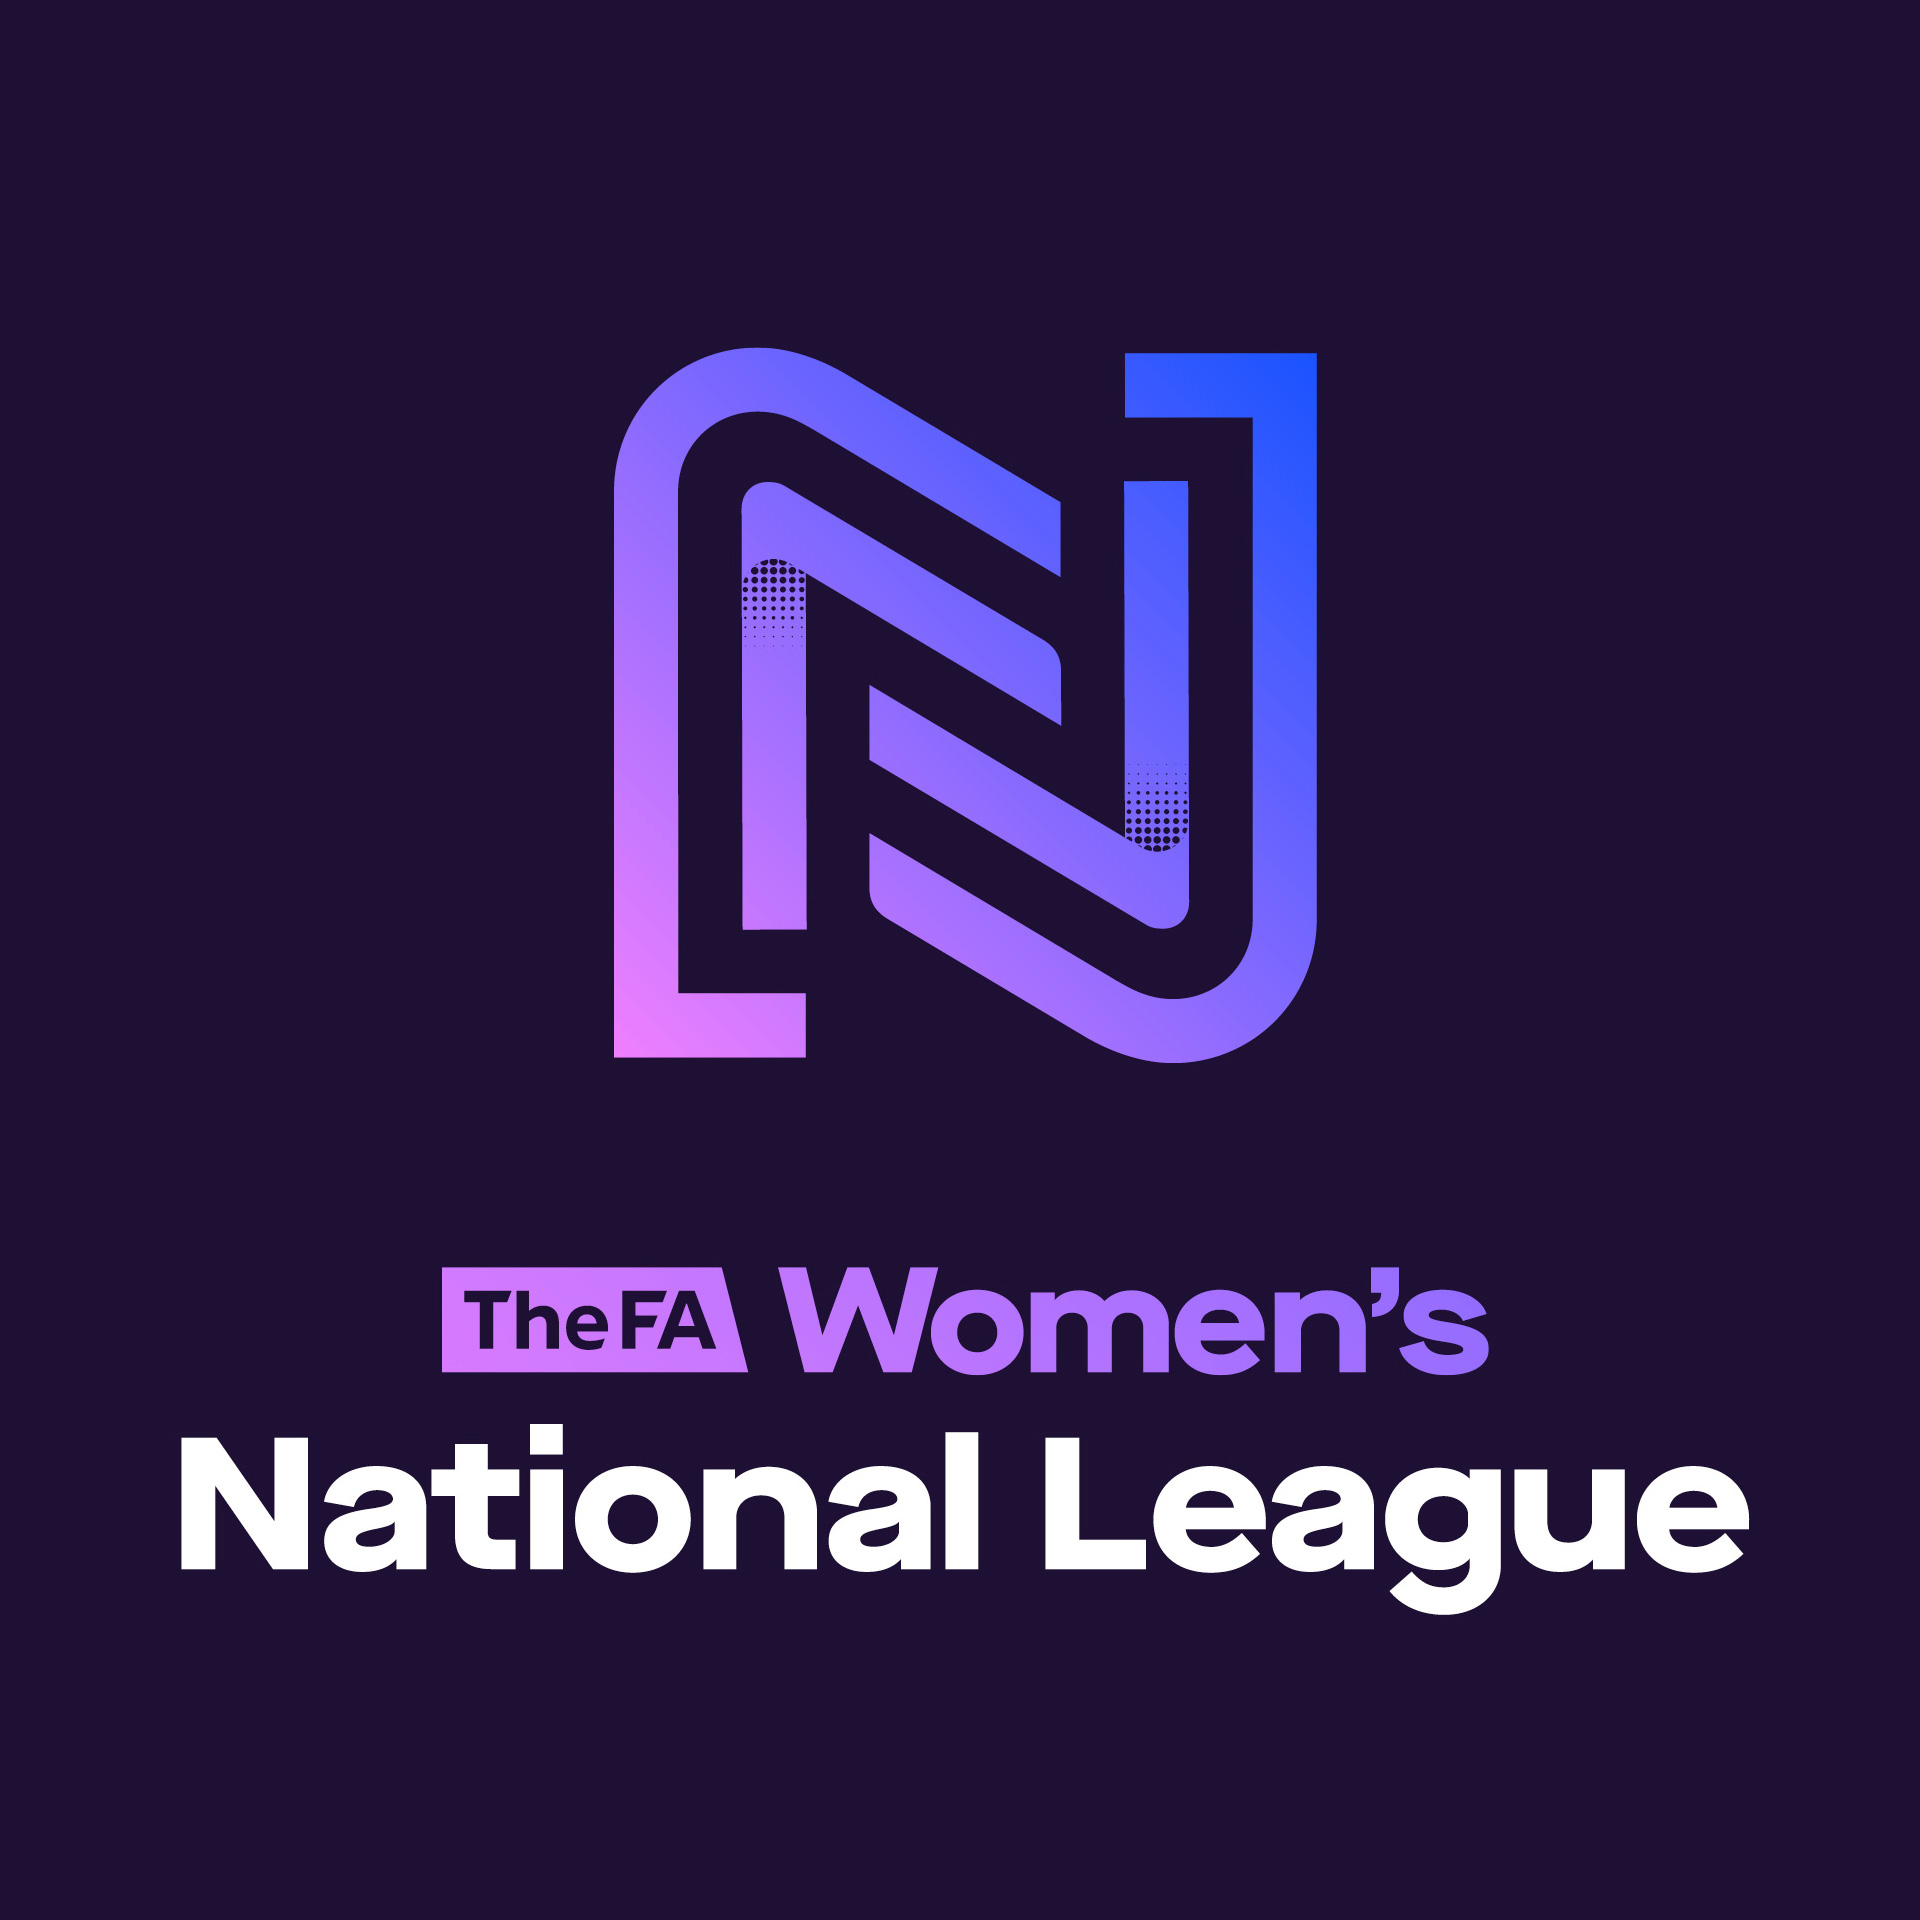 New Logos and Identity for FA Women's Leagues by Nomad